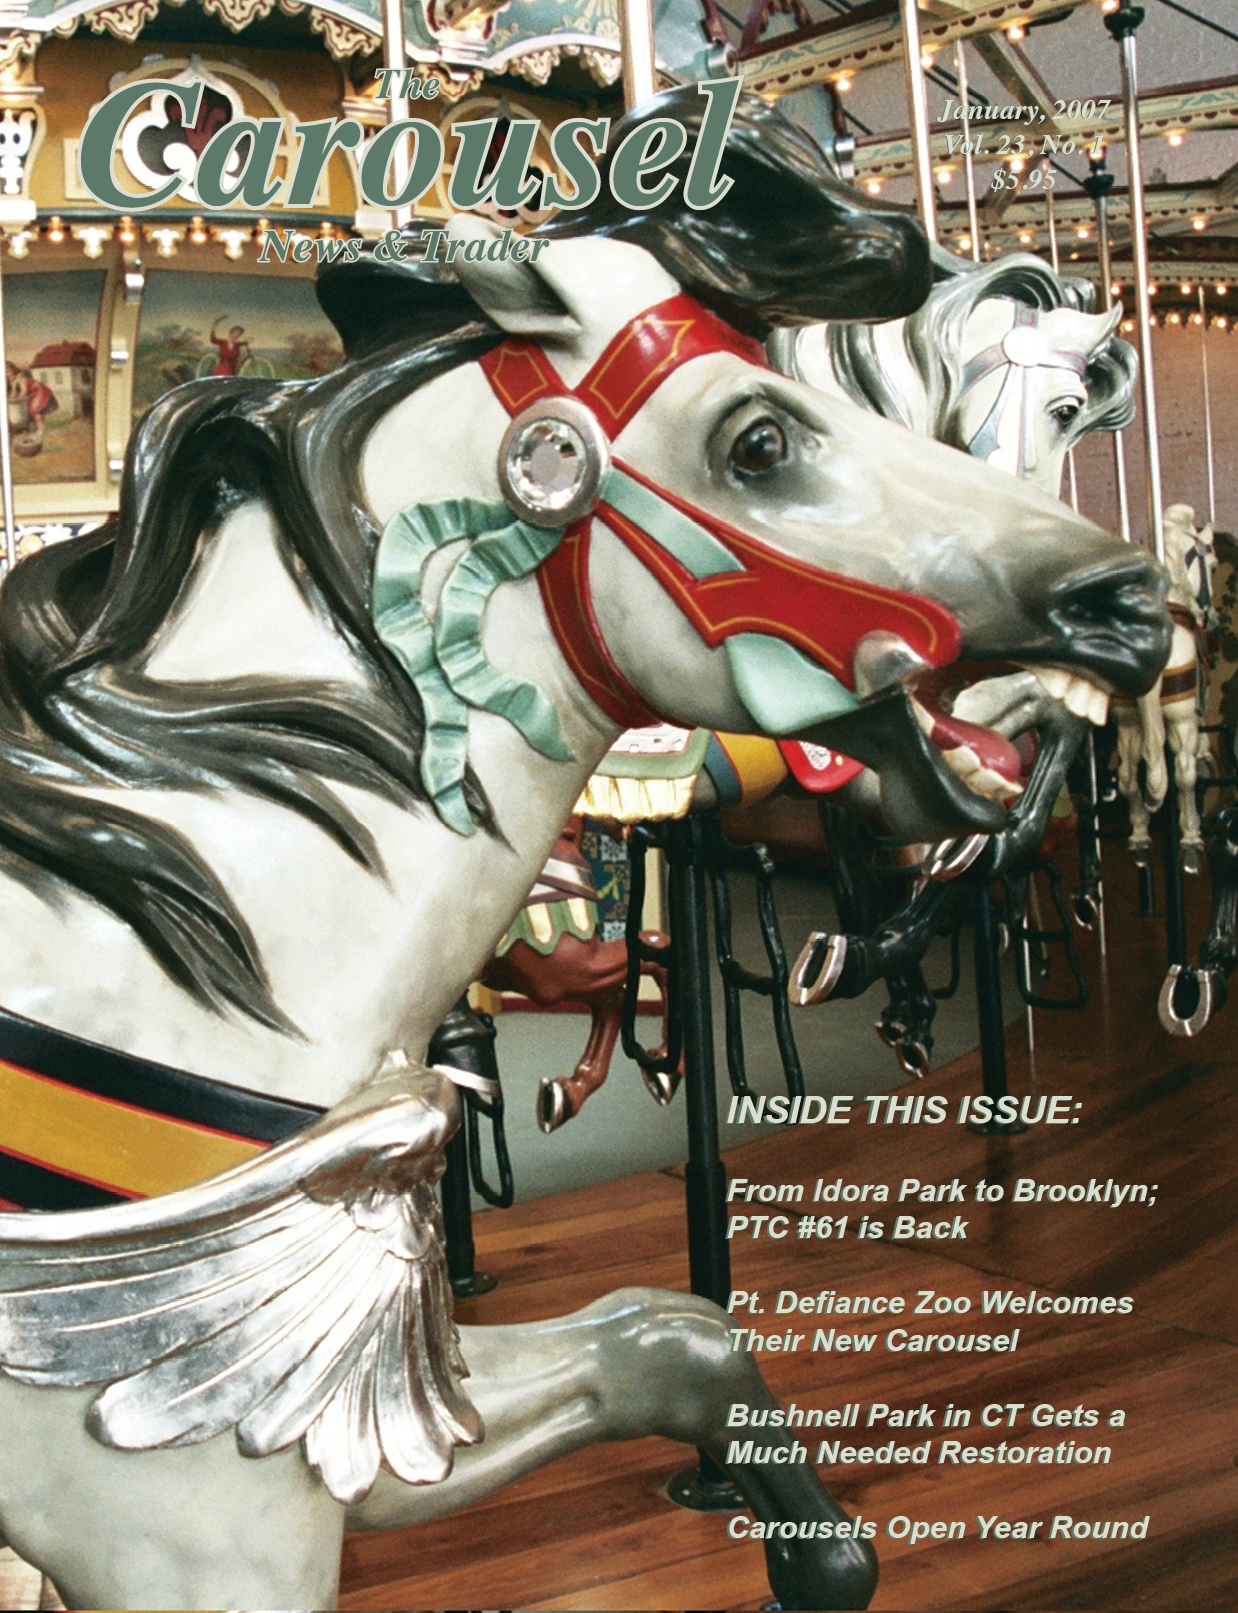 Carousel-news-cover-1_2007-PTC-61-Brooklyn-John-Caruso-photo